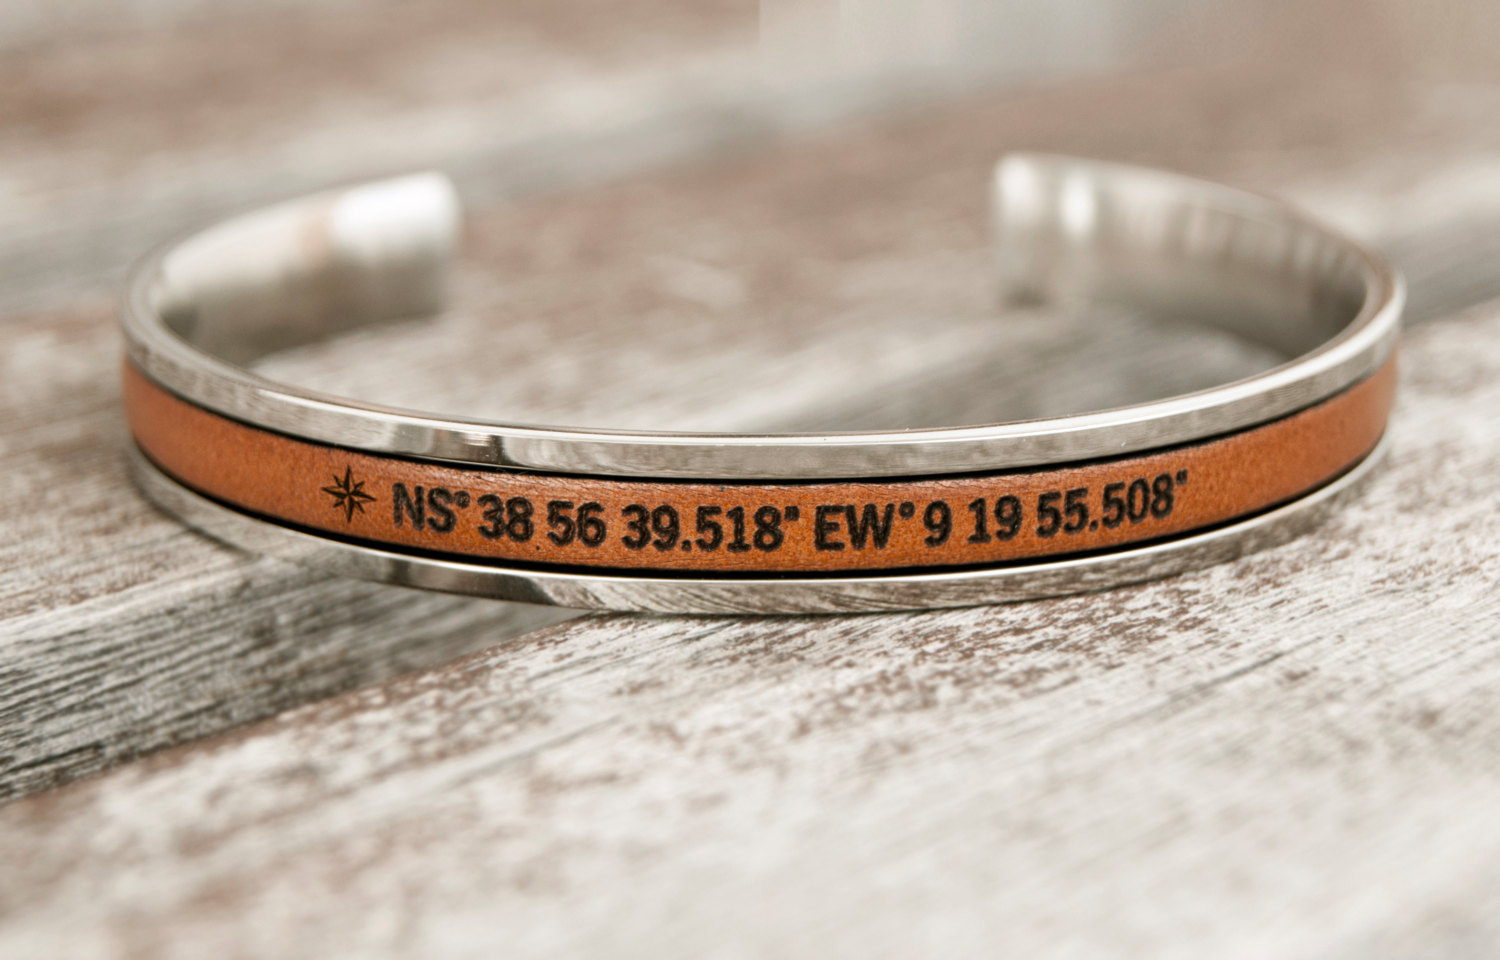 cuff bracelet your niciart longitude latitude bronze own gold solid products with coordinates